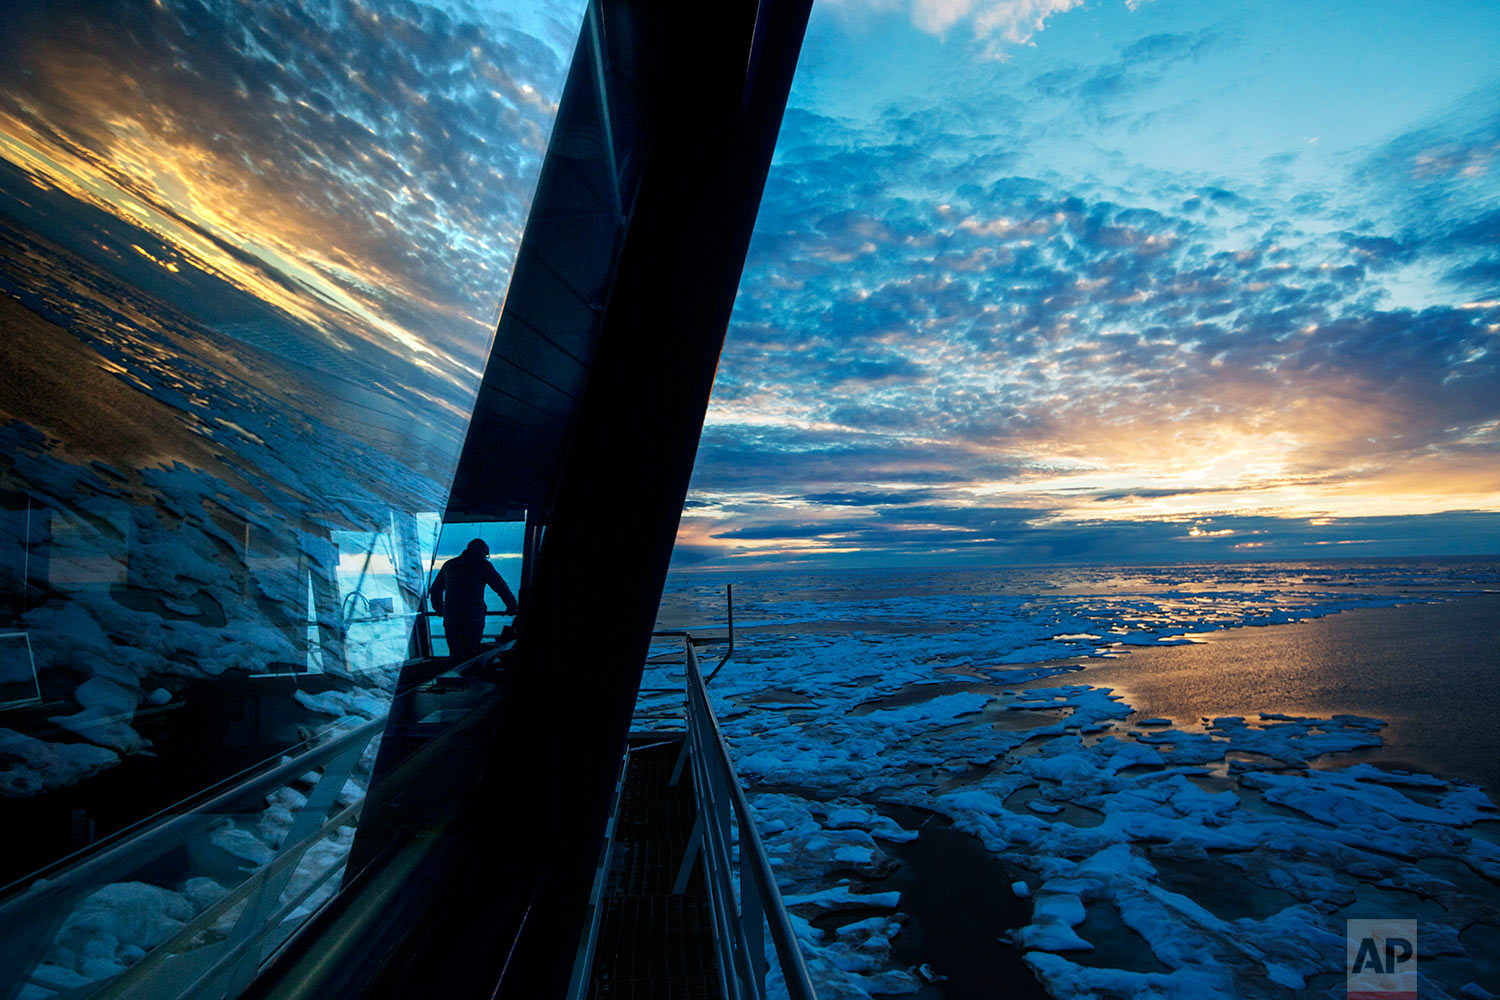 Nigel Greenwood, assistant ice navigator, looks out at the ice from the bridge while standing watch overnight aboard the Finnish icebreaker MSV Nordica as it traverses the Northwest Passage in the Canadian Arctic Archipelago, Friday, July 21, 2017. Modern mariners can get daily satellite snapshots of the ice and precise GPS locations that help them dodge dangerous shallows. But technology can be fickle. After two weeks at sea the ship's fragile internet connection went down for six days: no emails, no Google, no new satellite pictures to preview the route ahead. (AP Photo/David Goldman)